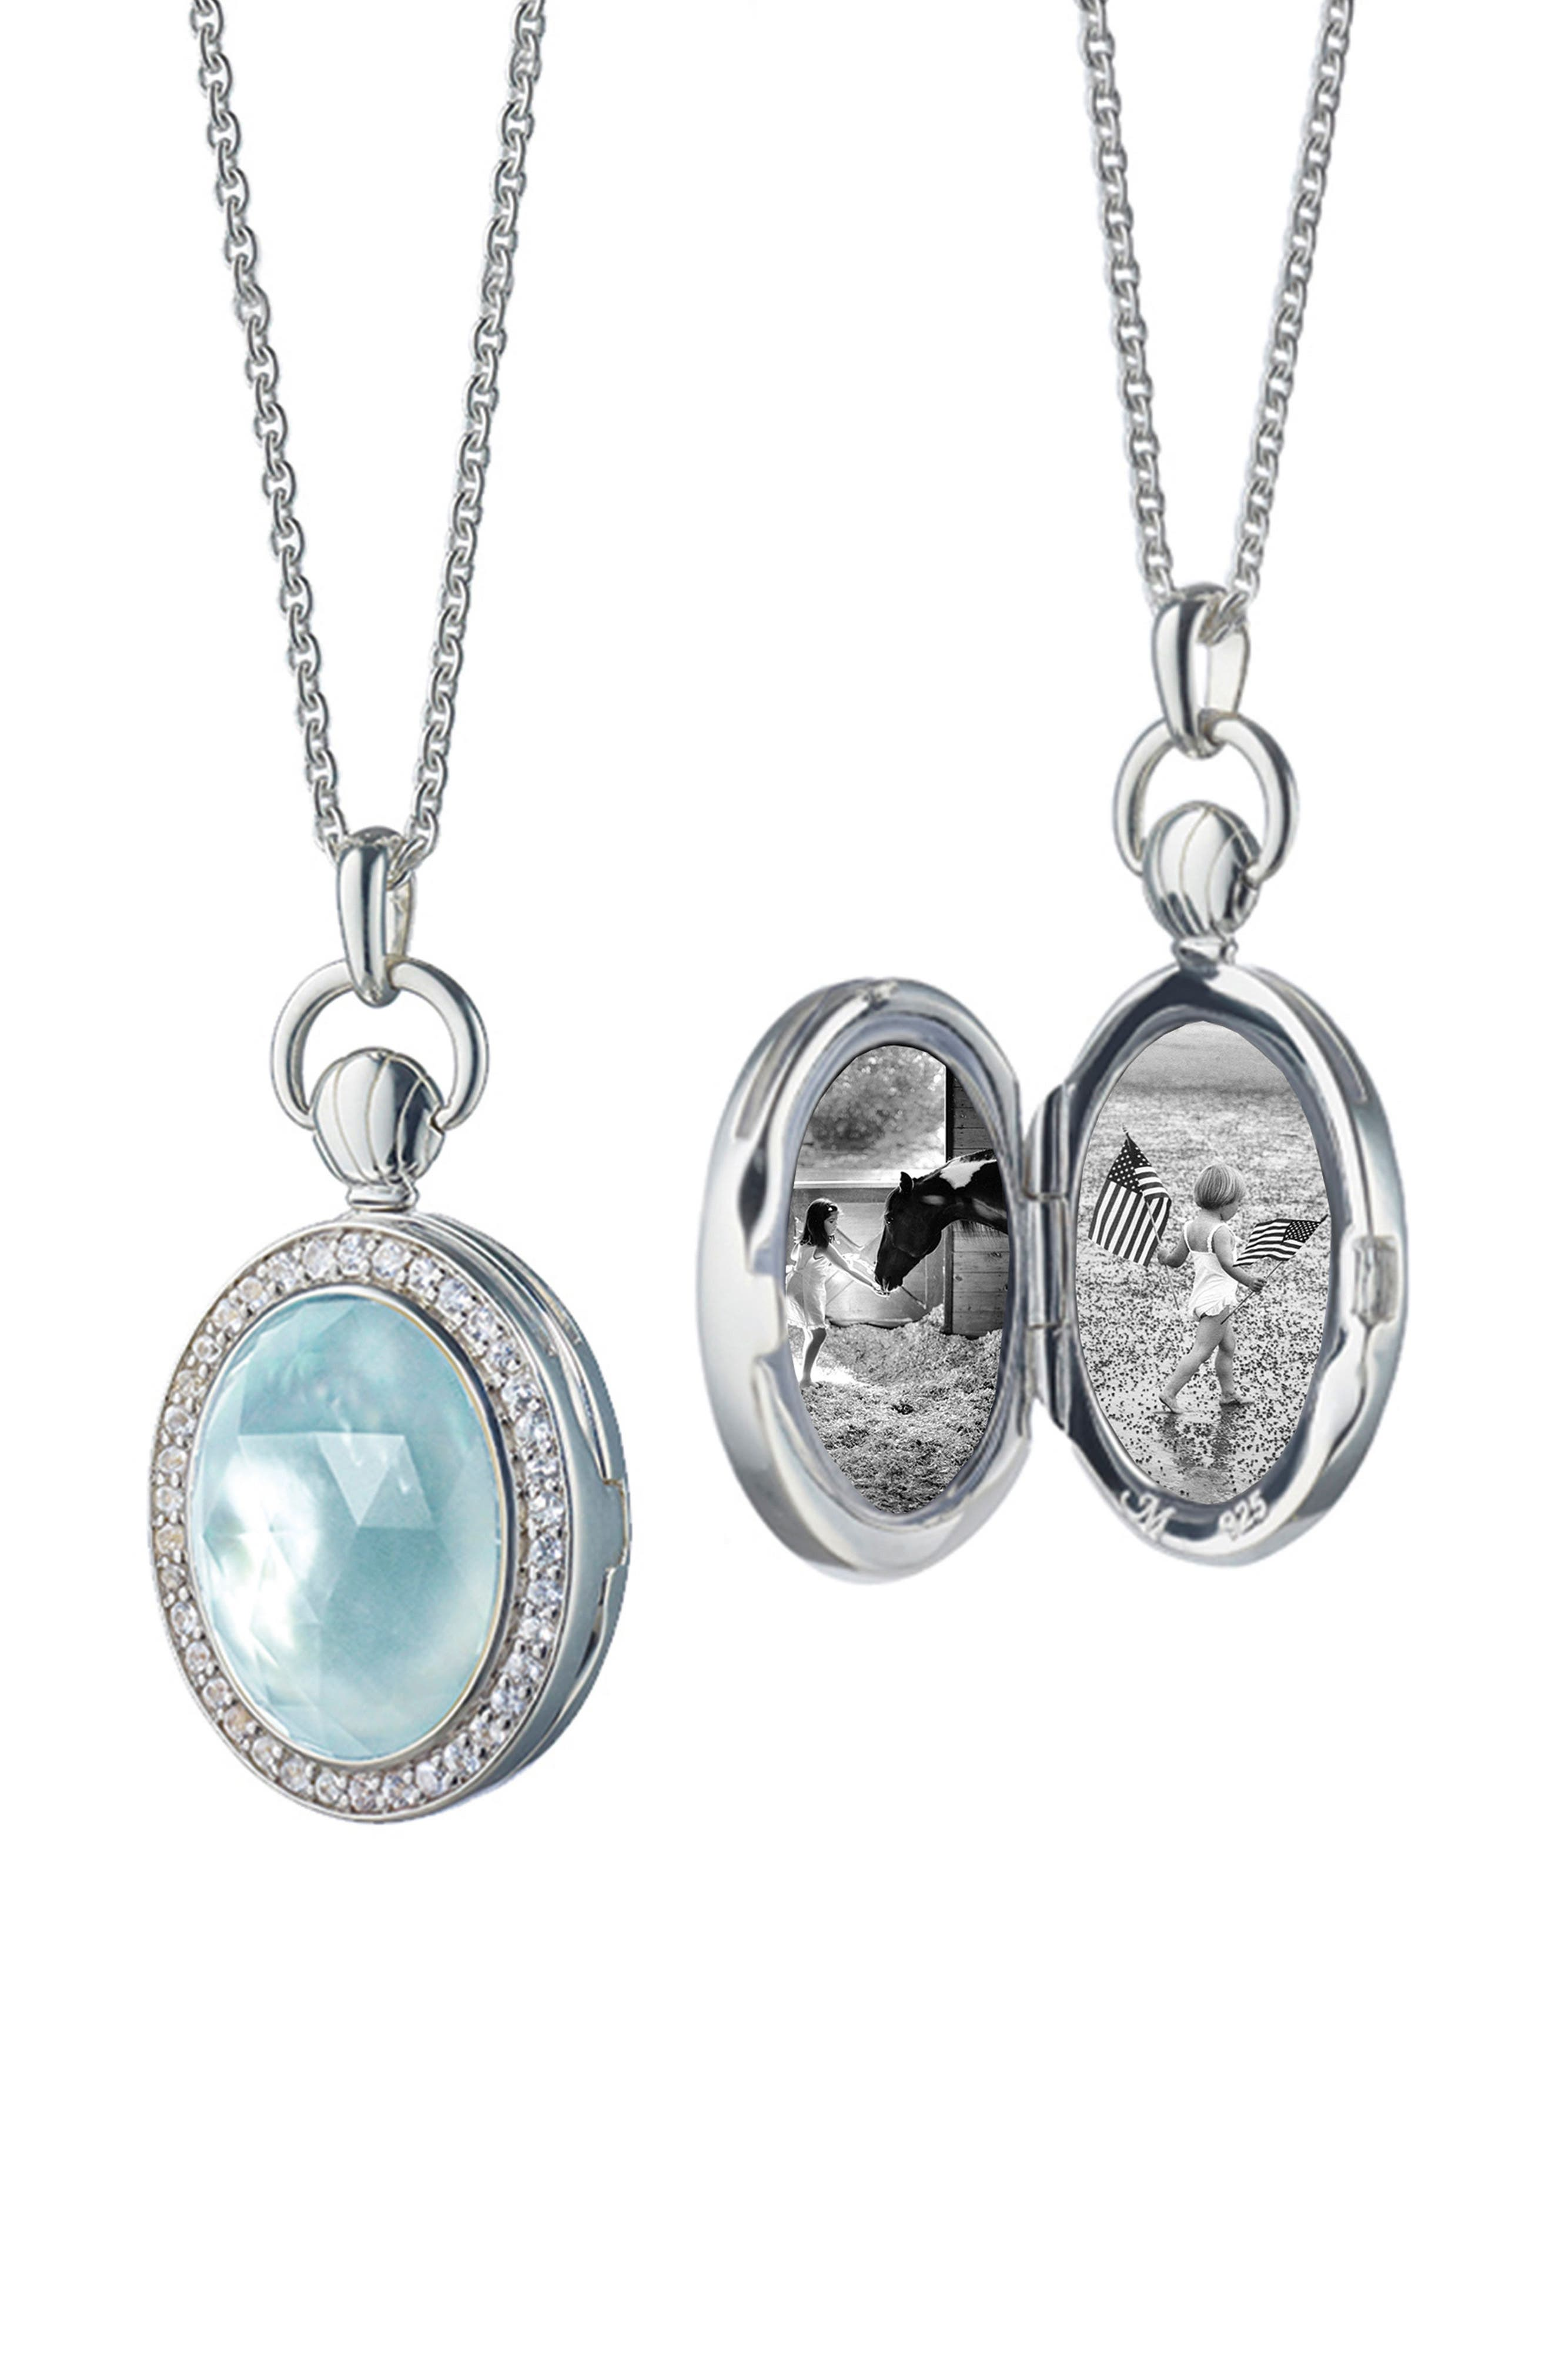 Oval Blue Topaz Petite Locket Necklace,                             Main thumbnail 1, color,                             STERLING SILVER